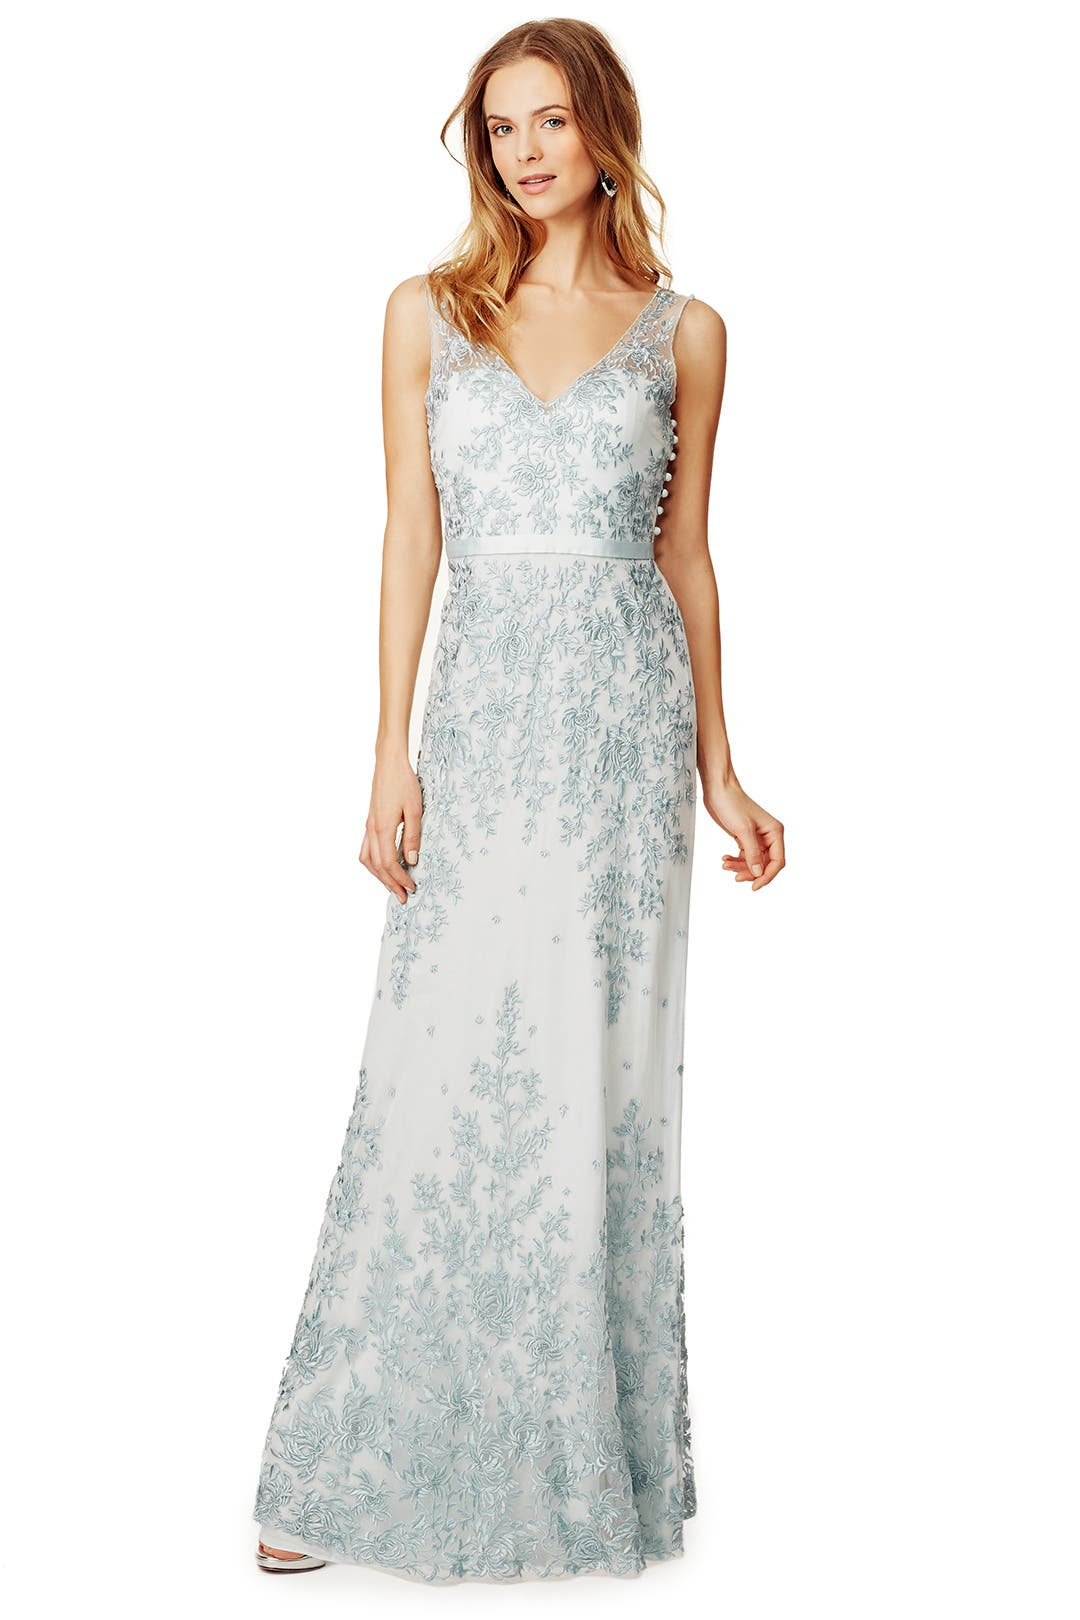 Dresses - CATHERINE DEANE Great selection and prices for Wedding ...